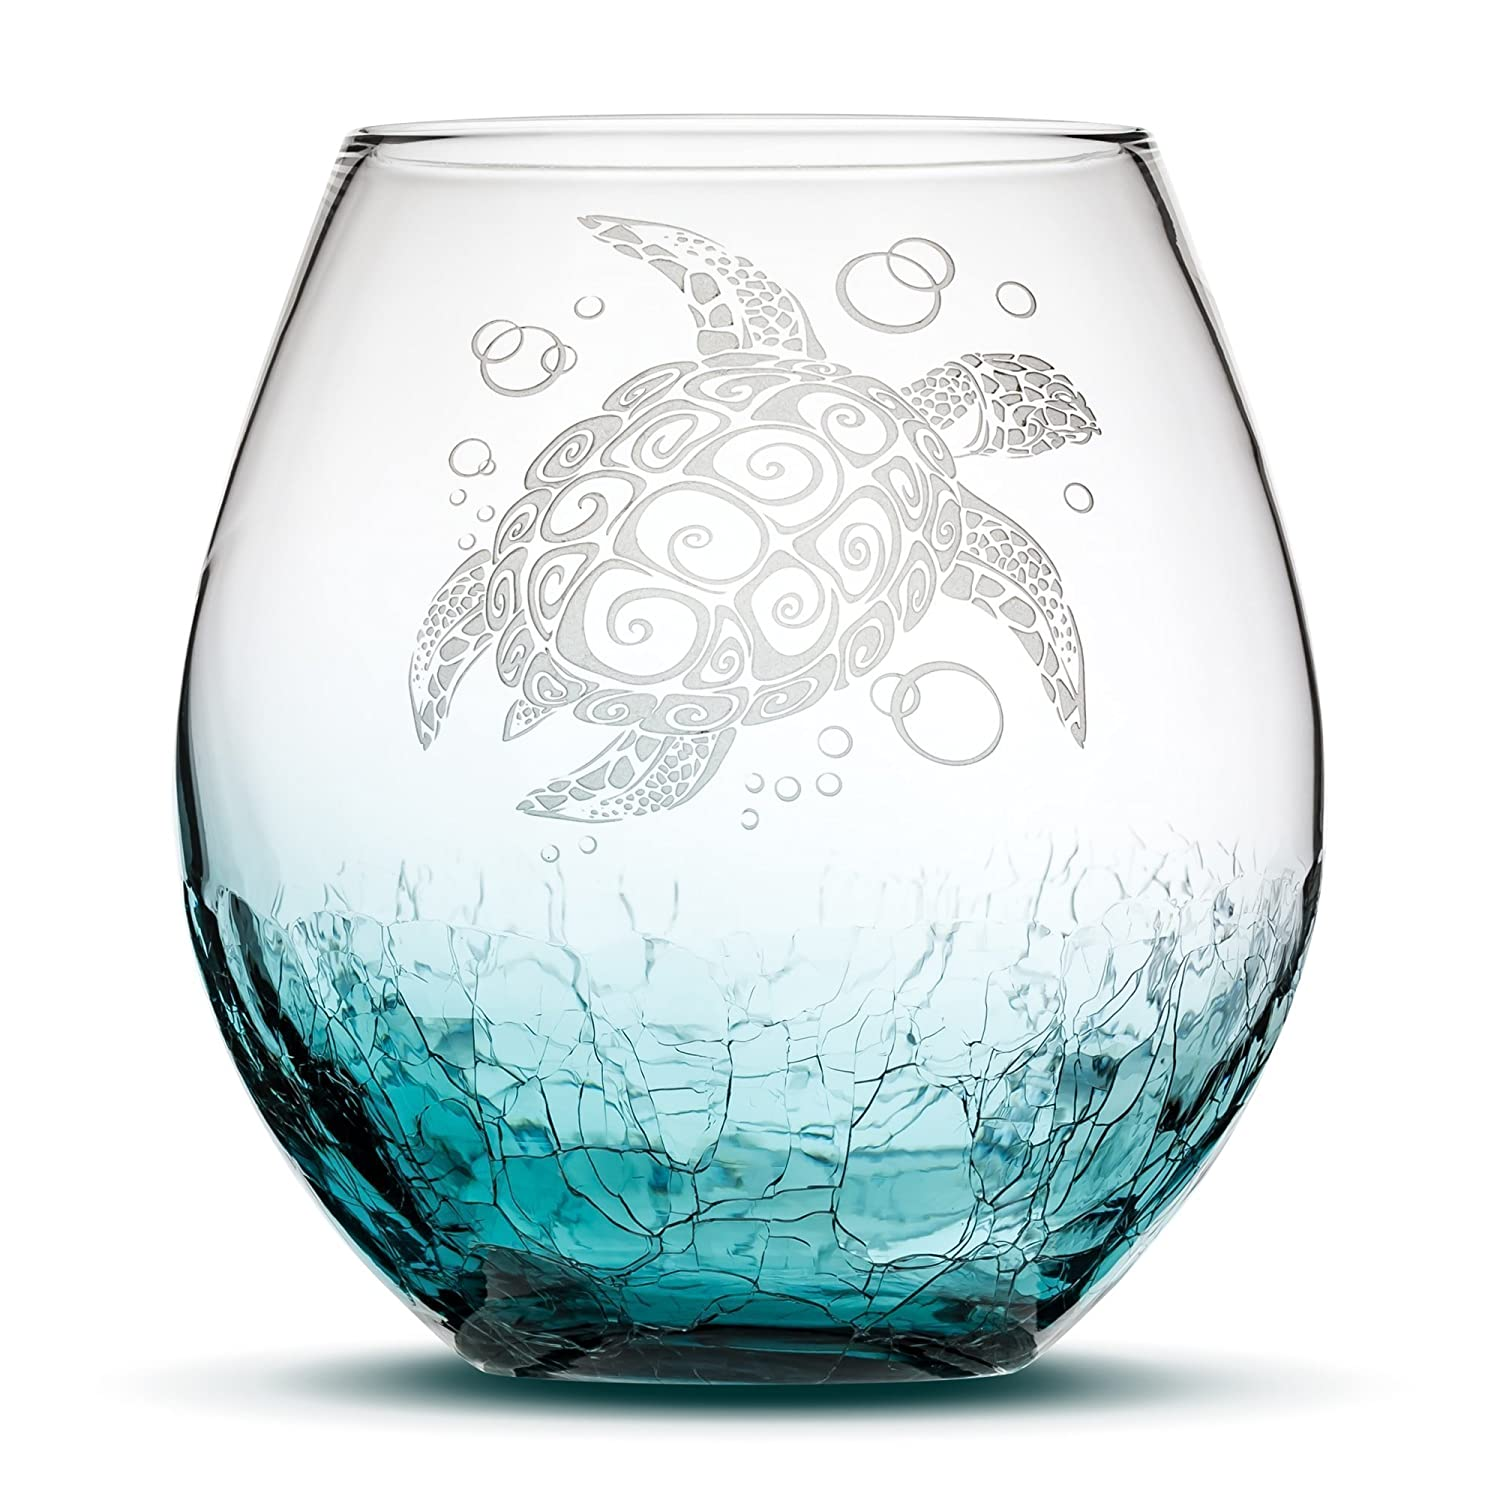 Sea Turtle Stemless Wine Glass, Crackle Teal, Handblown, Tribal Design, Hand Etched Gifts, Sand Carved by Integrity Bottles